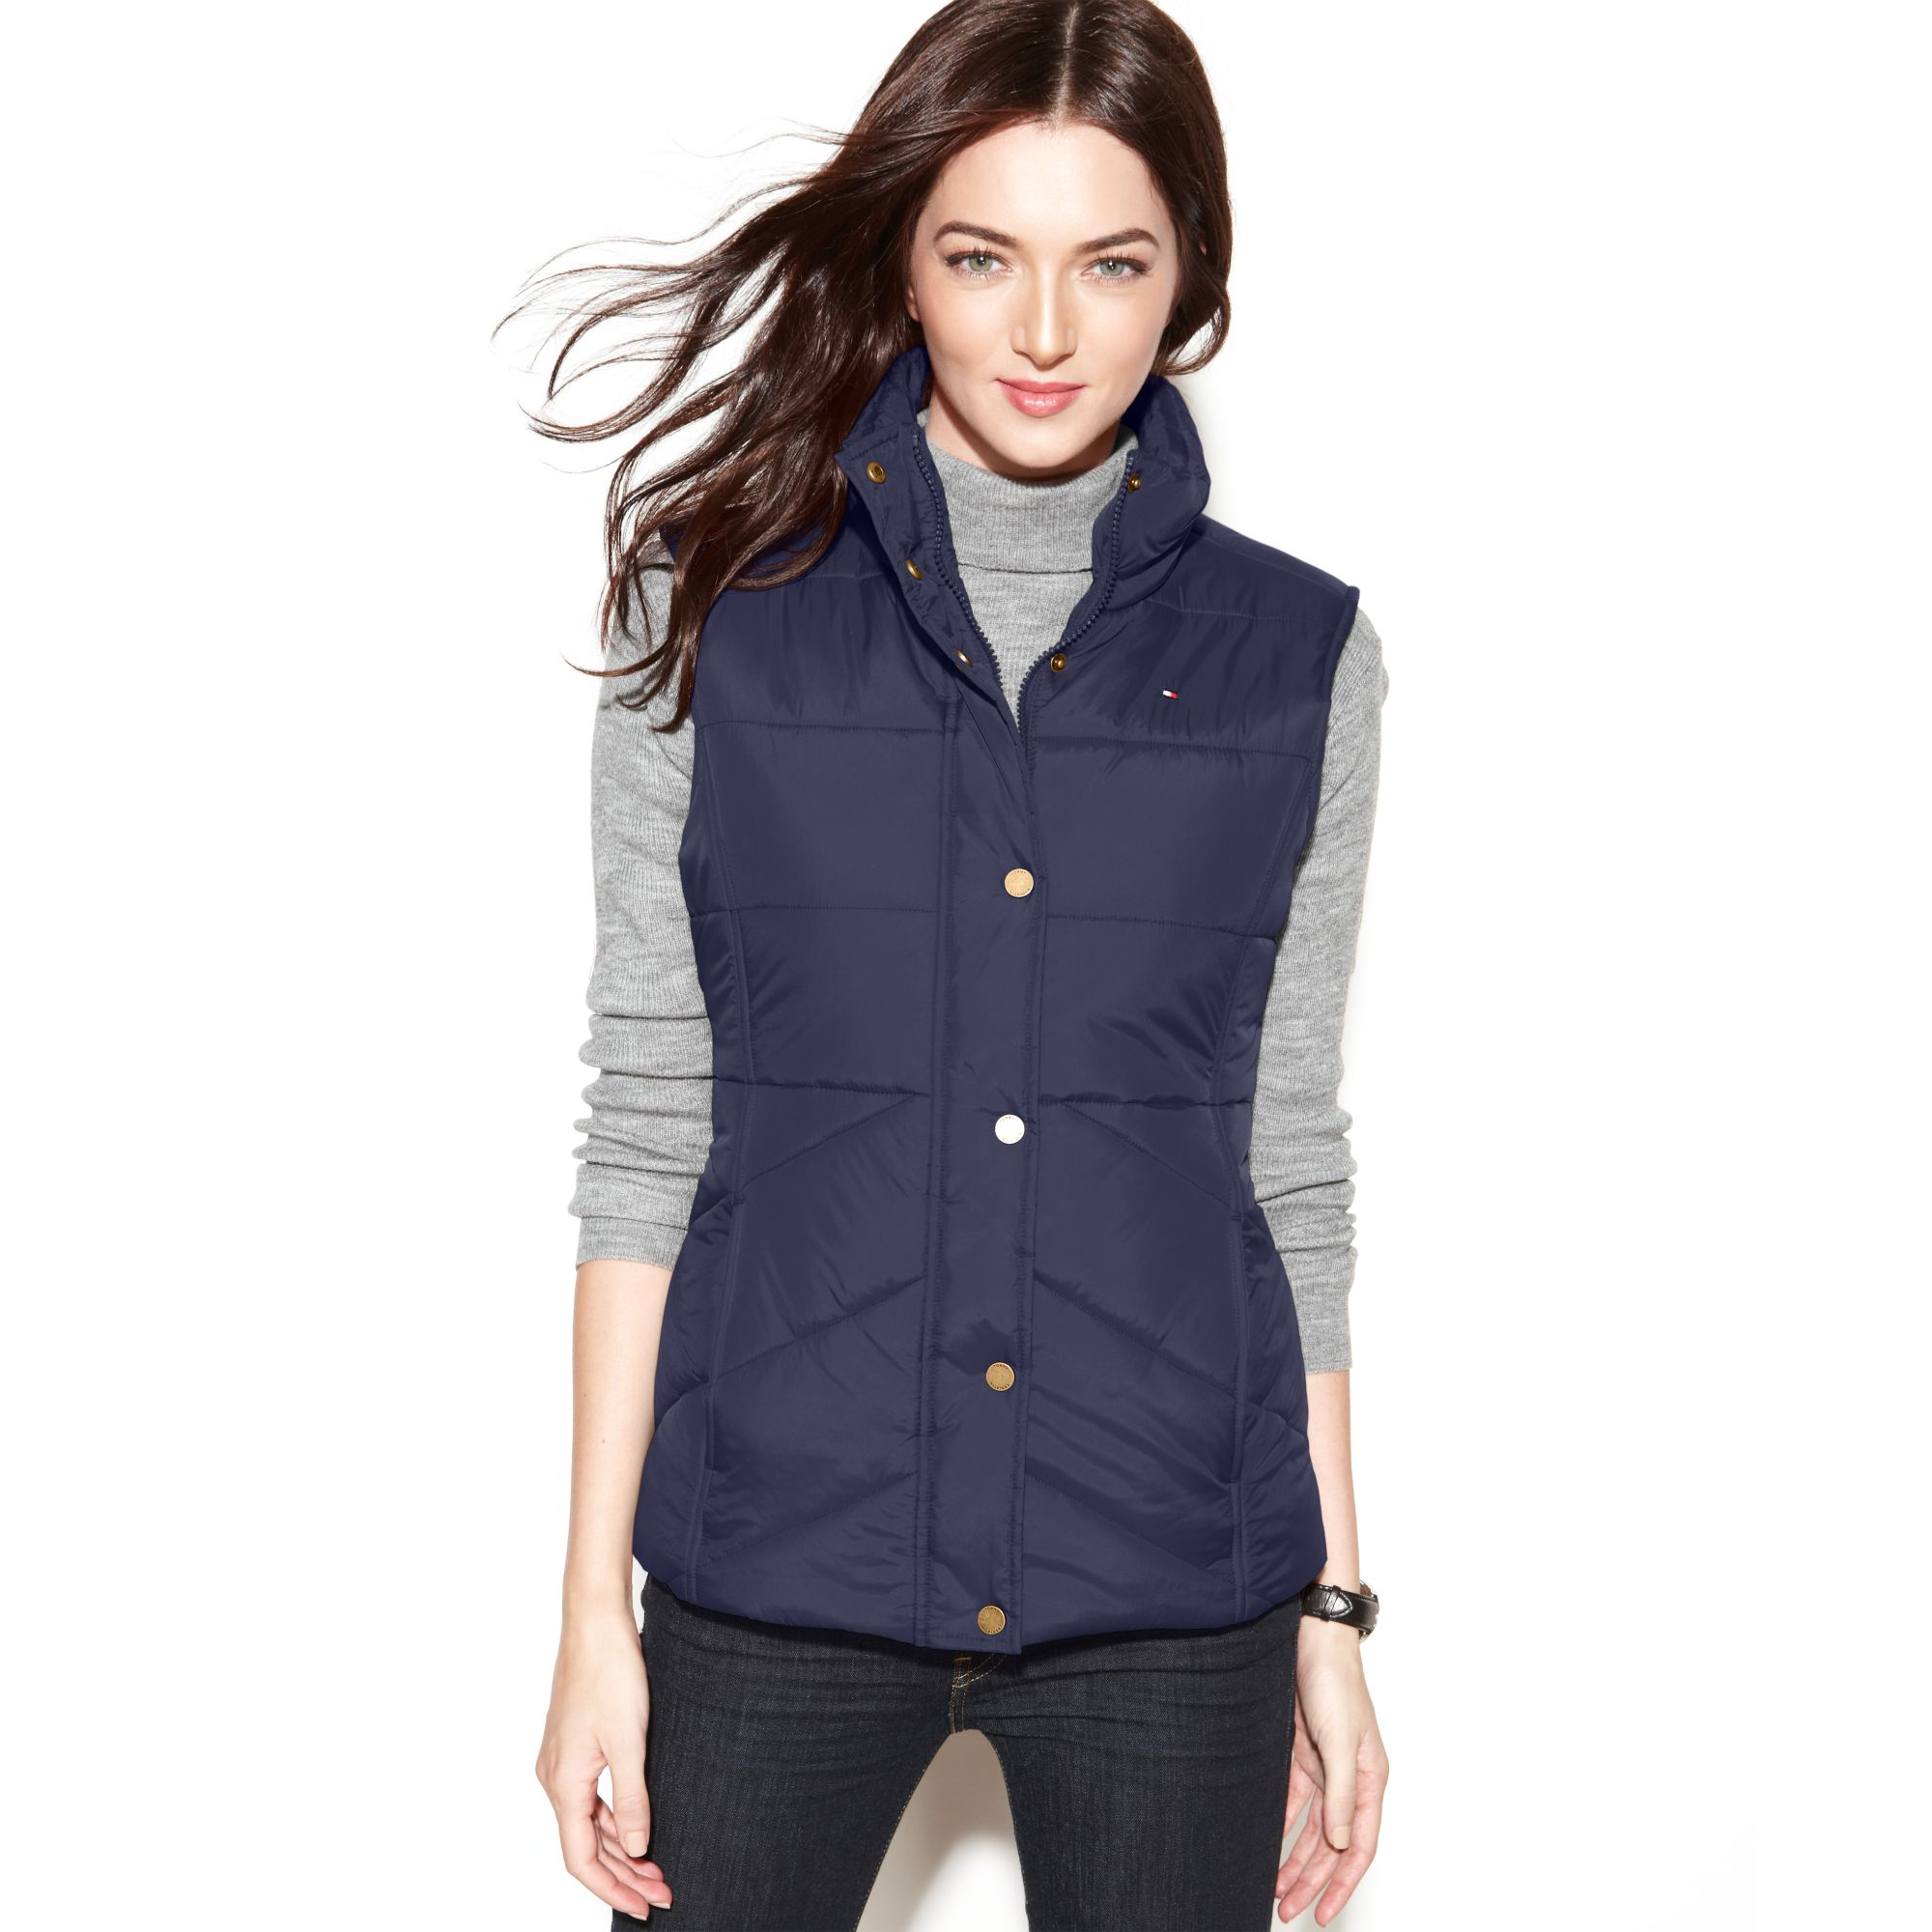 Tommy hilfiger Quilted Puffer in Blue   Lyst : tommy hilfiger quilted vest - Adamdwight.com